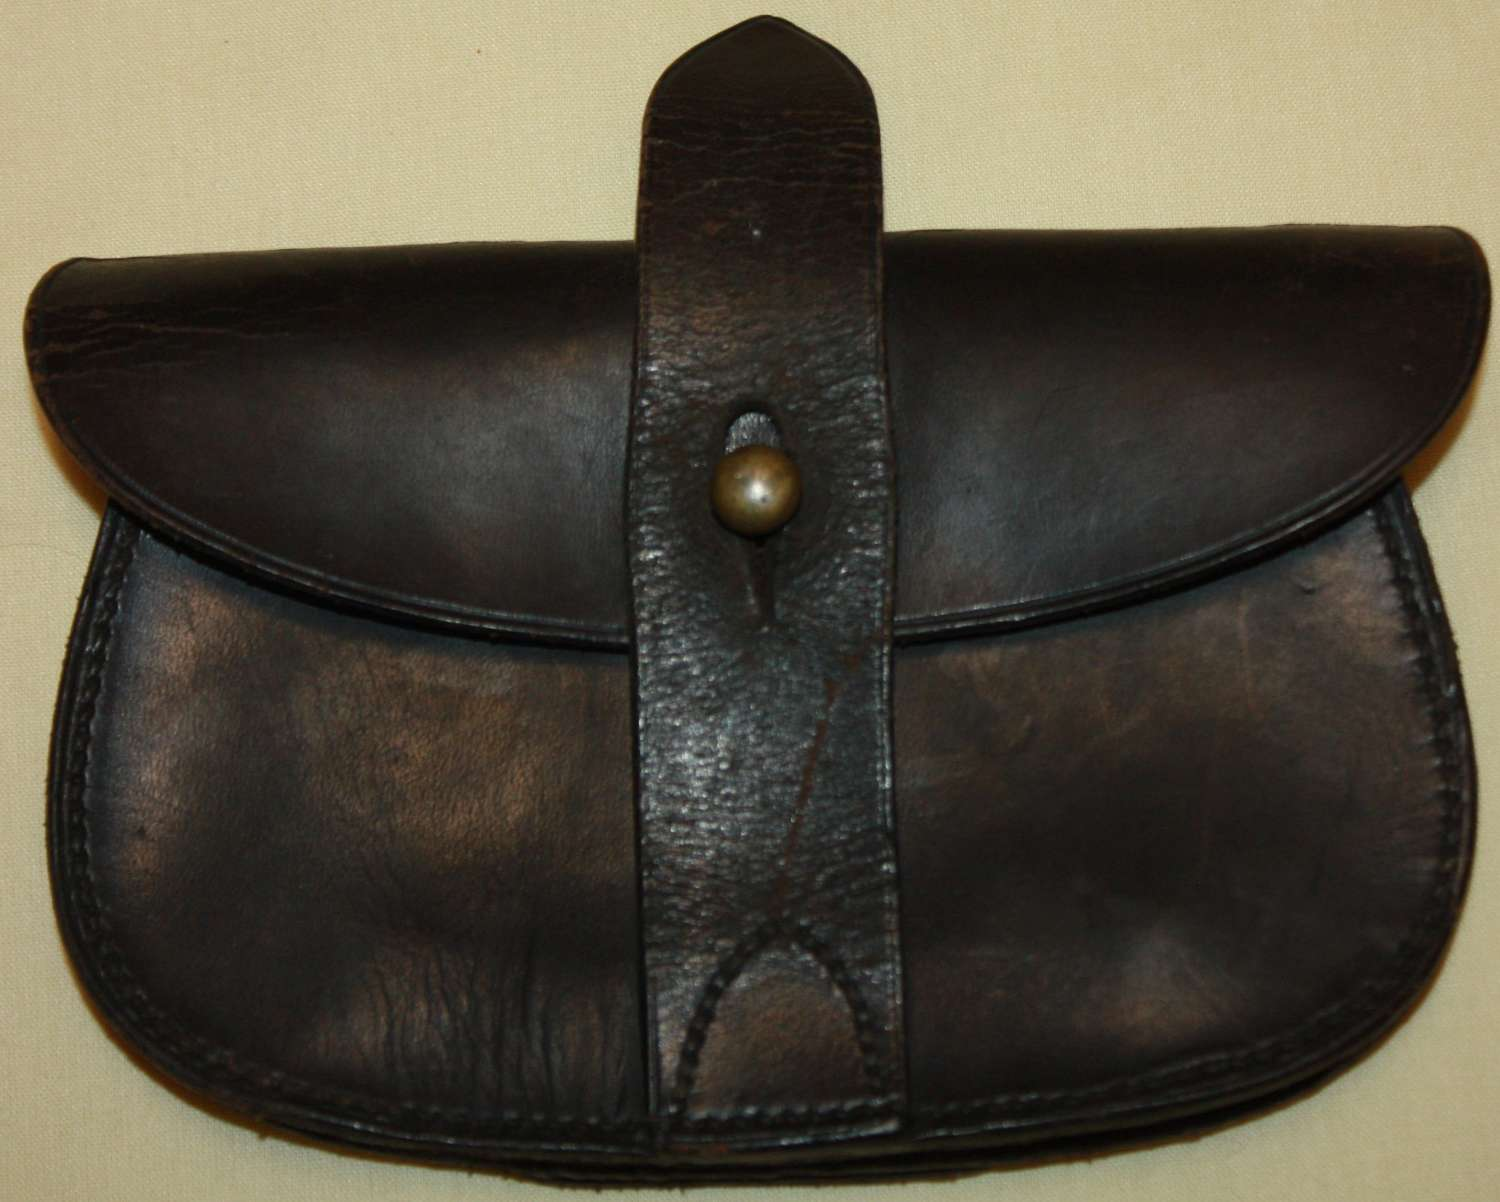 A GOOD USED WWI PERIOD SAMBROWN PISTOL AMMO POUCH